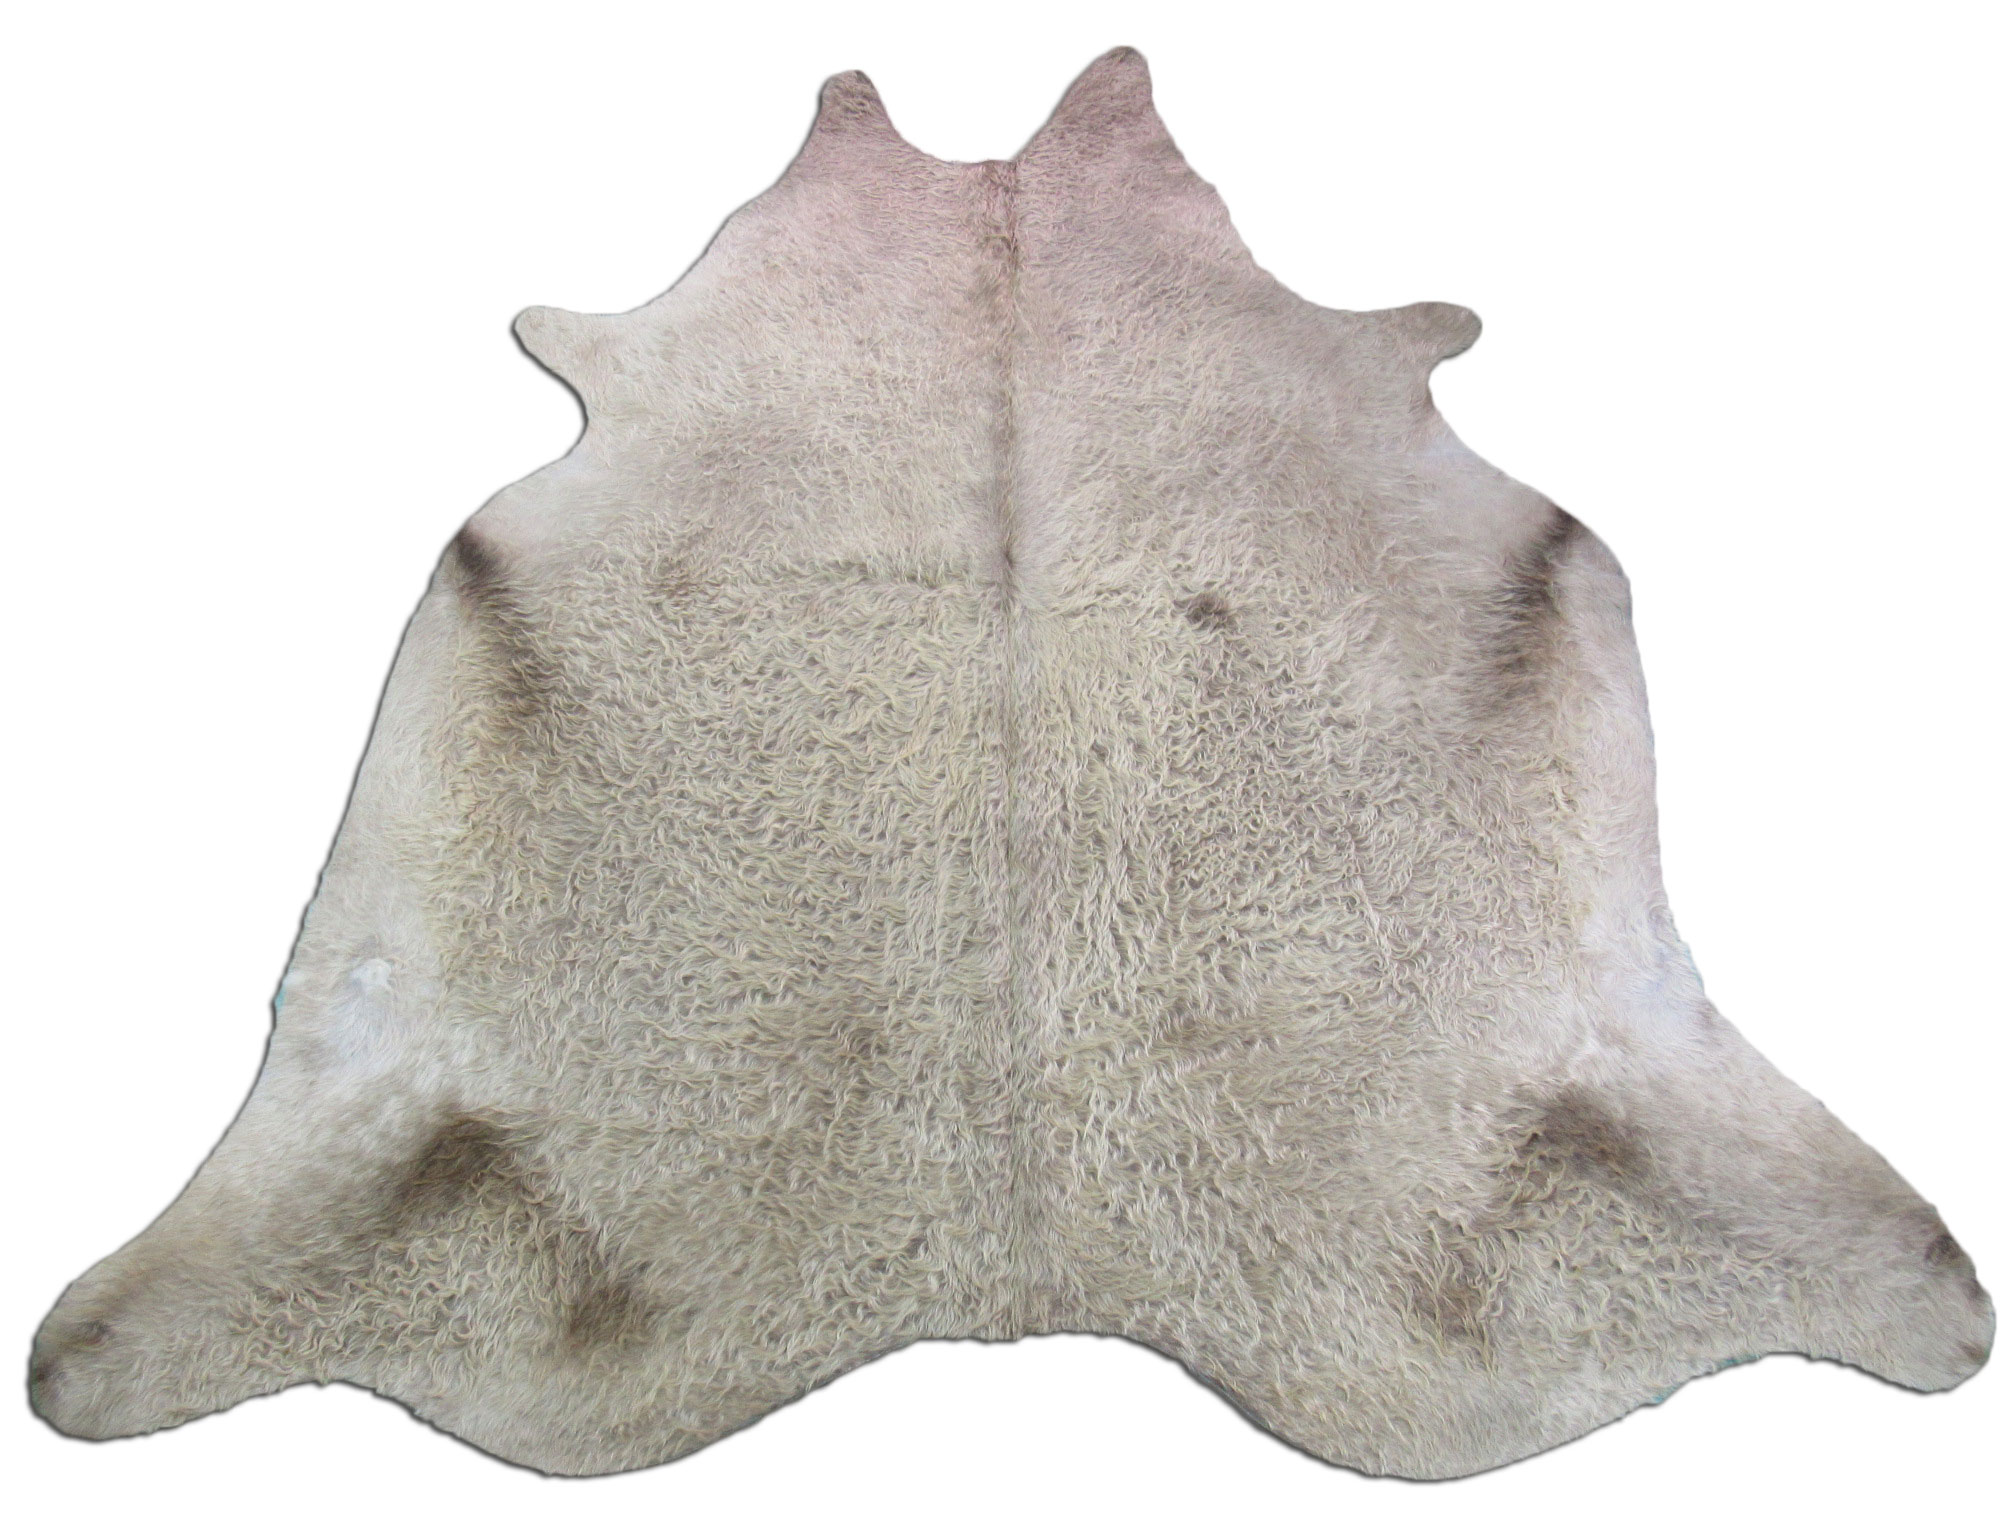 A-967 Taupe/Caramel Cowhide Rug Size: 8' X 7'